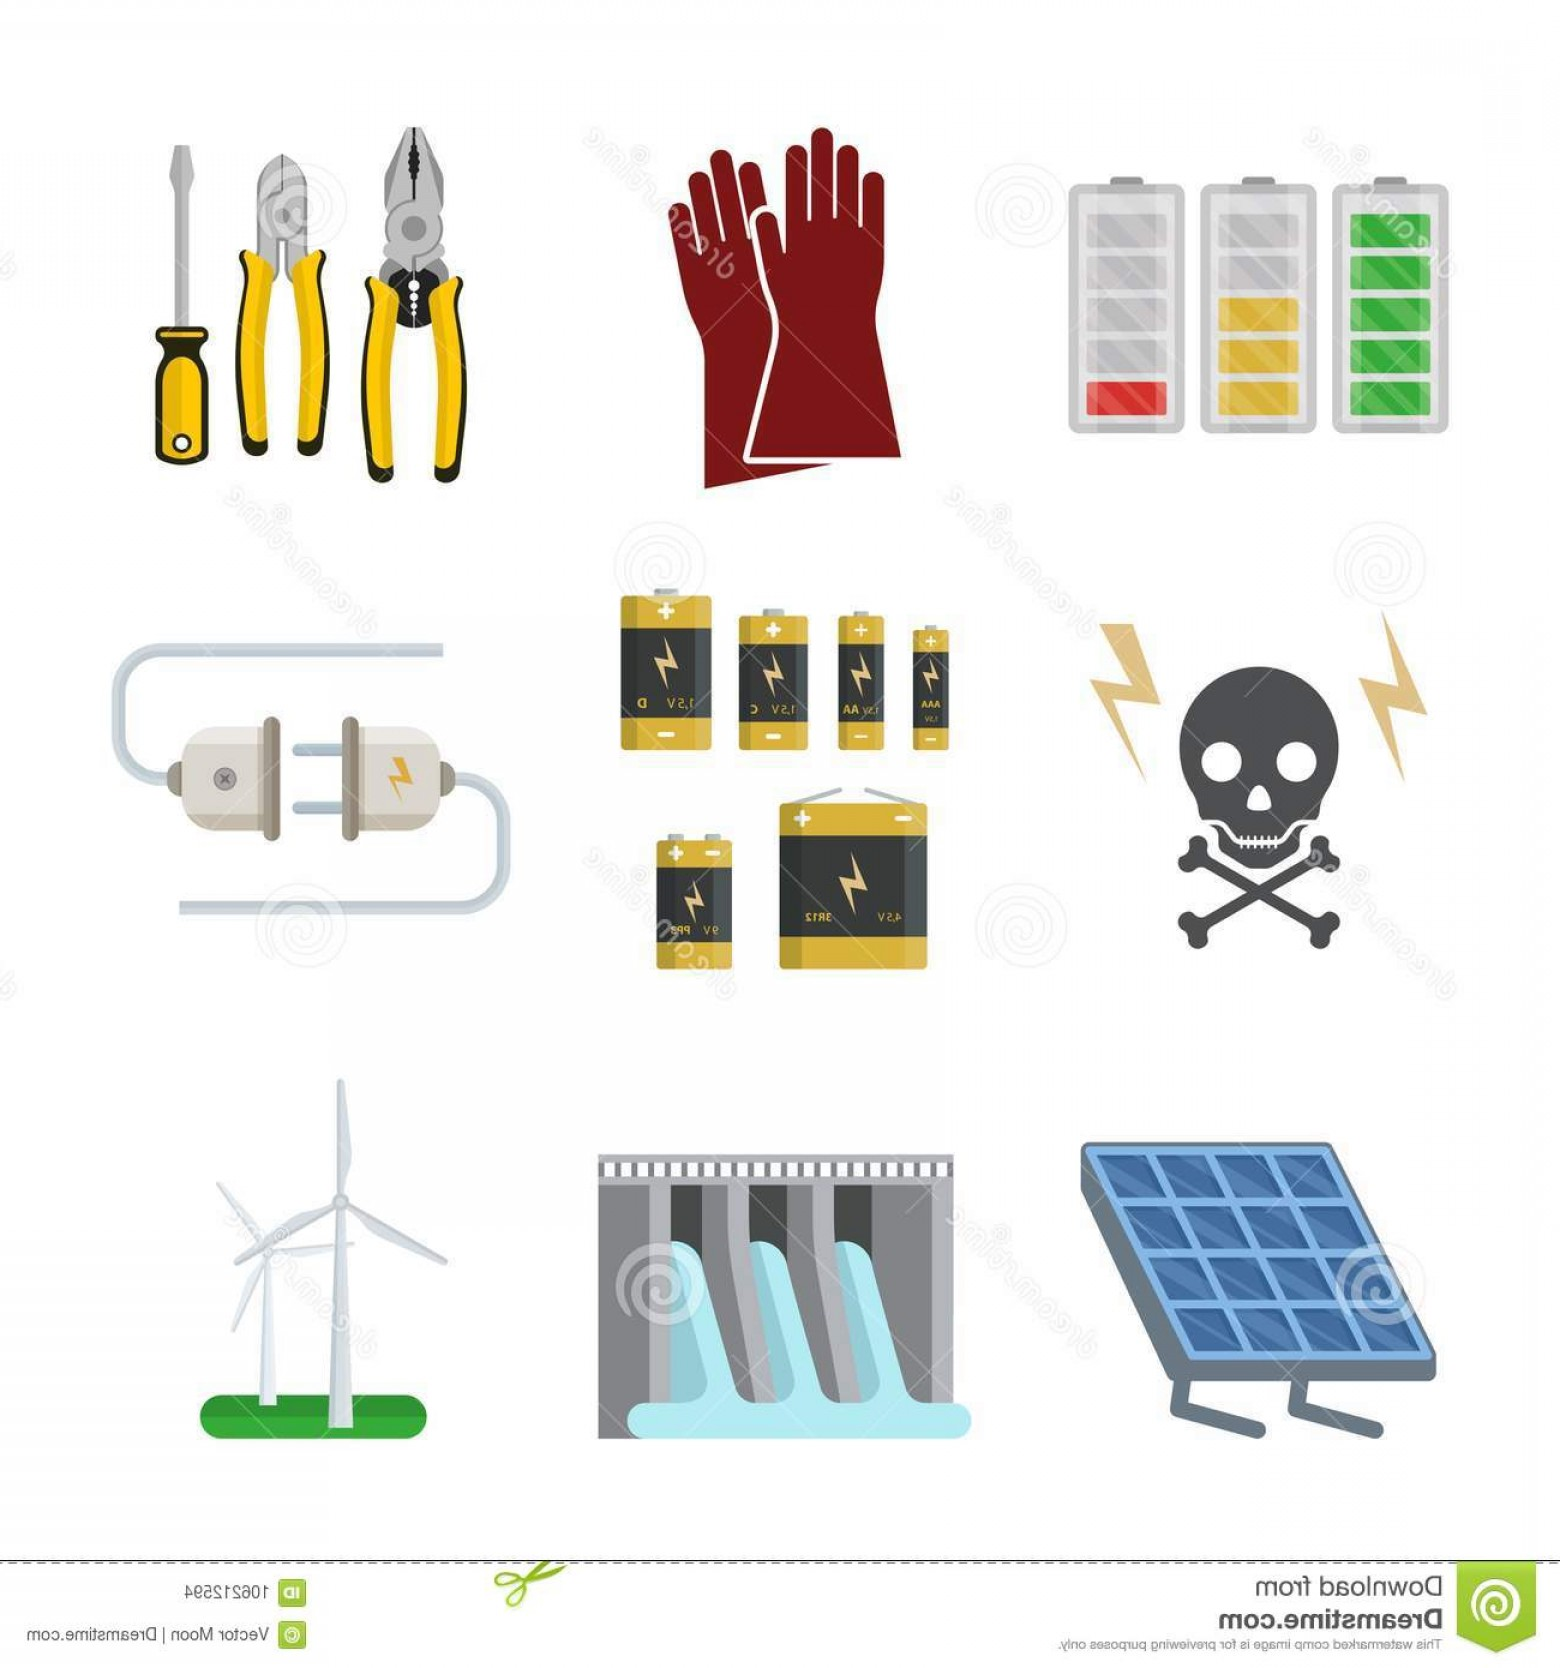 Battery Electricity Vector Images: Energy Electricity Vector Power Icons Battery Illustration Industrial Electrician Voltage Electricity Factory Safety Energy Image